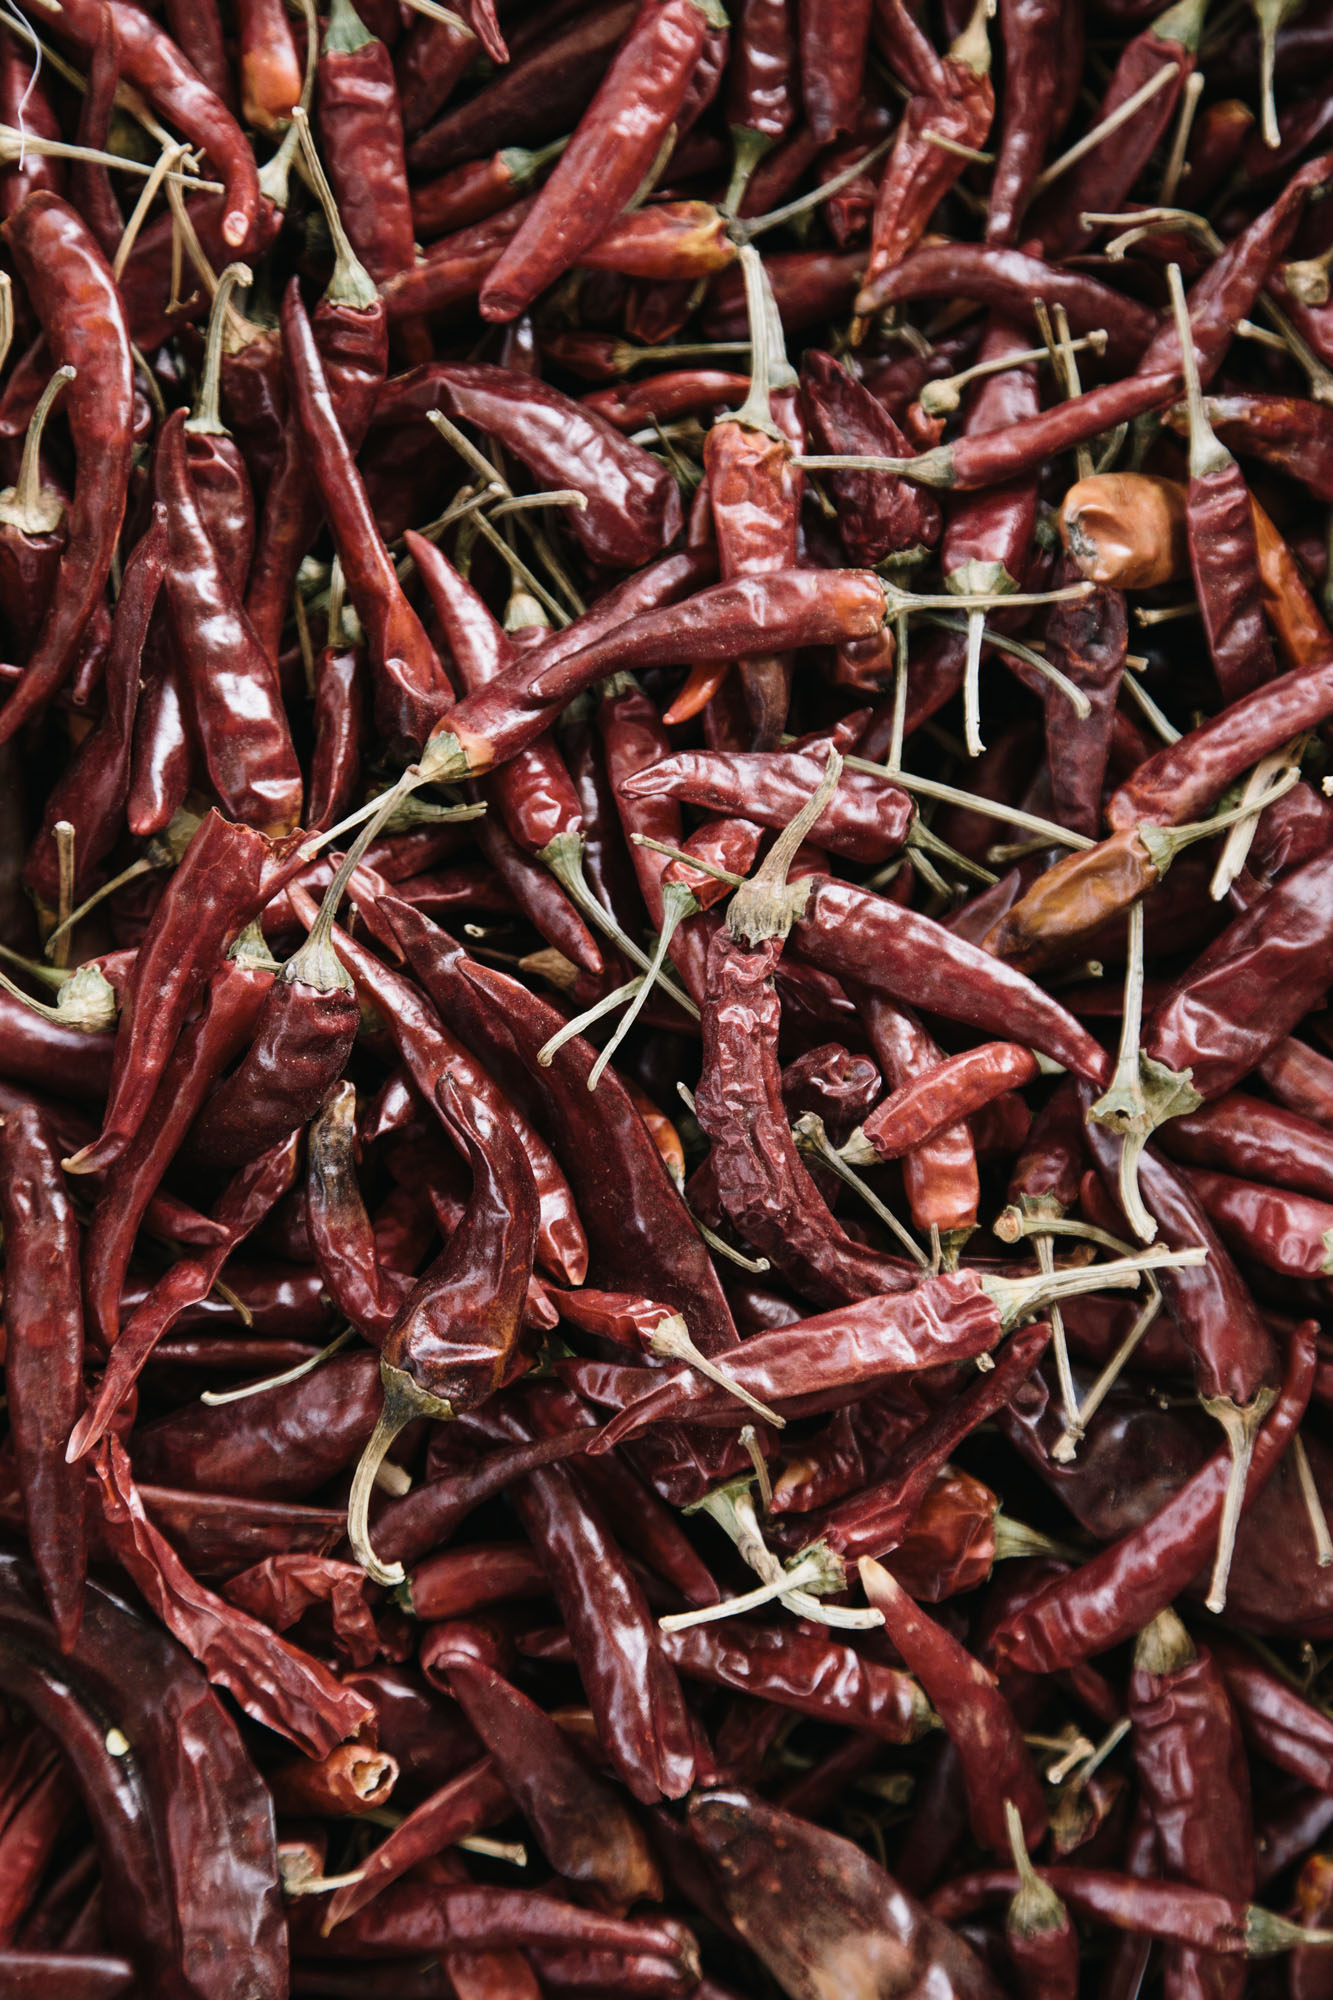 food-stock-photography-chili-peppers.jpg